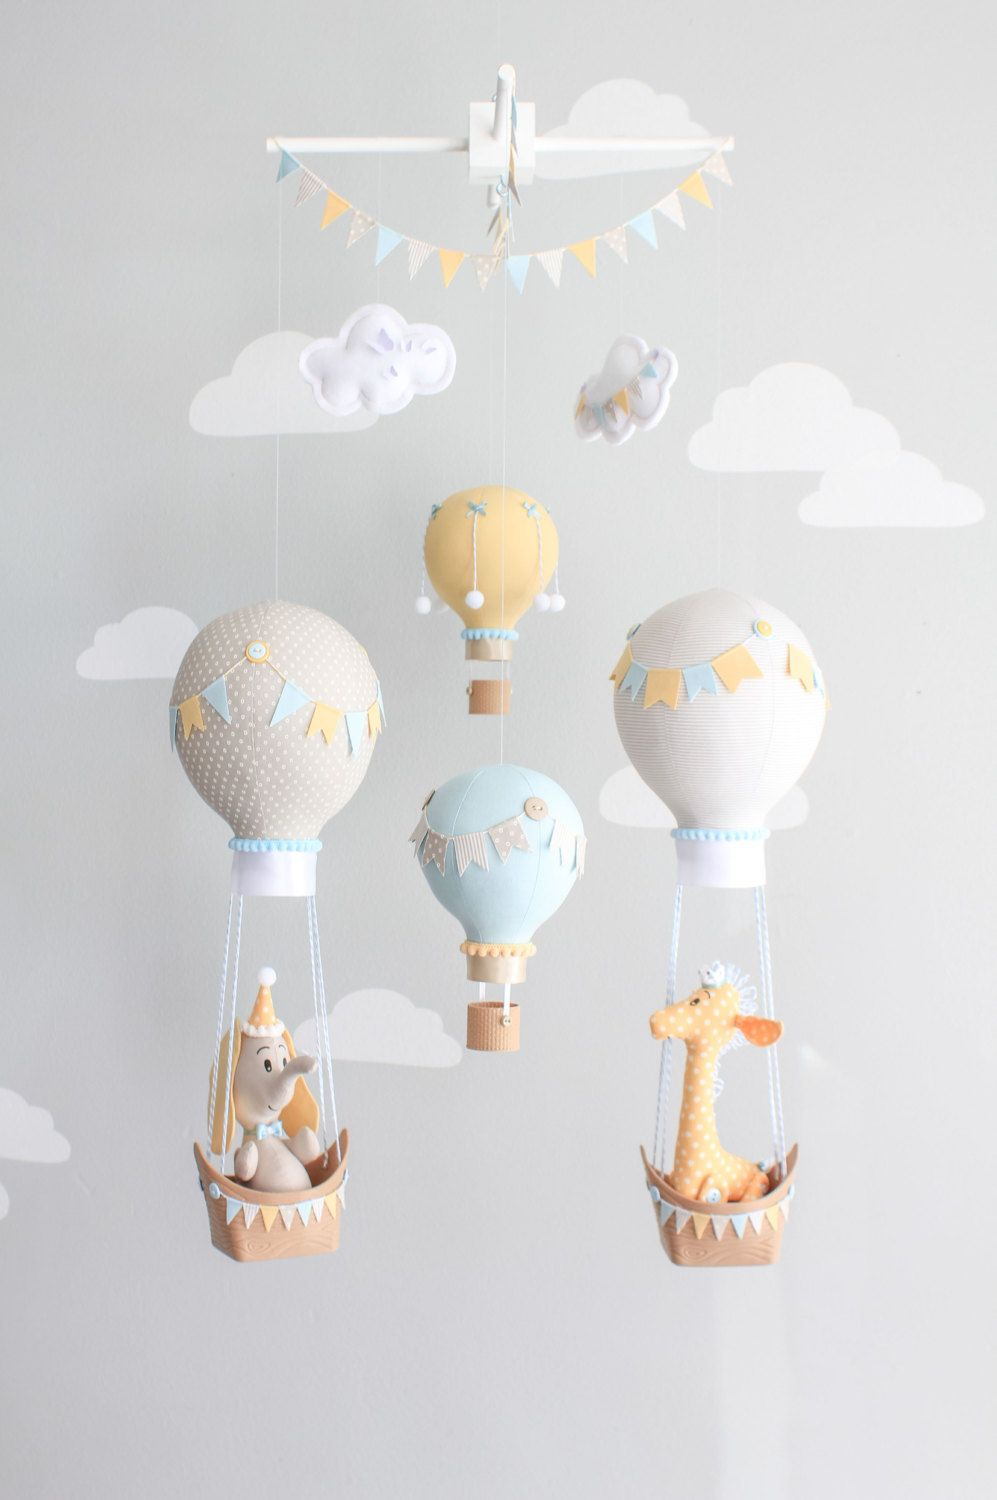 Hot Air Balloon Baby Mobile Giraffe And Elephant Nursery Decor Travel Theme Orange Aqua Gray Griege I167 By Sunshineandvodka On Etsy